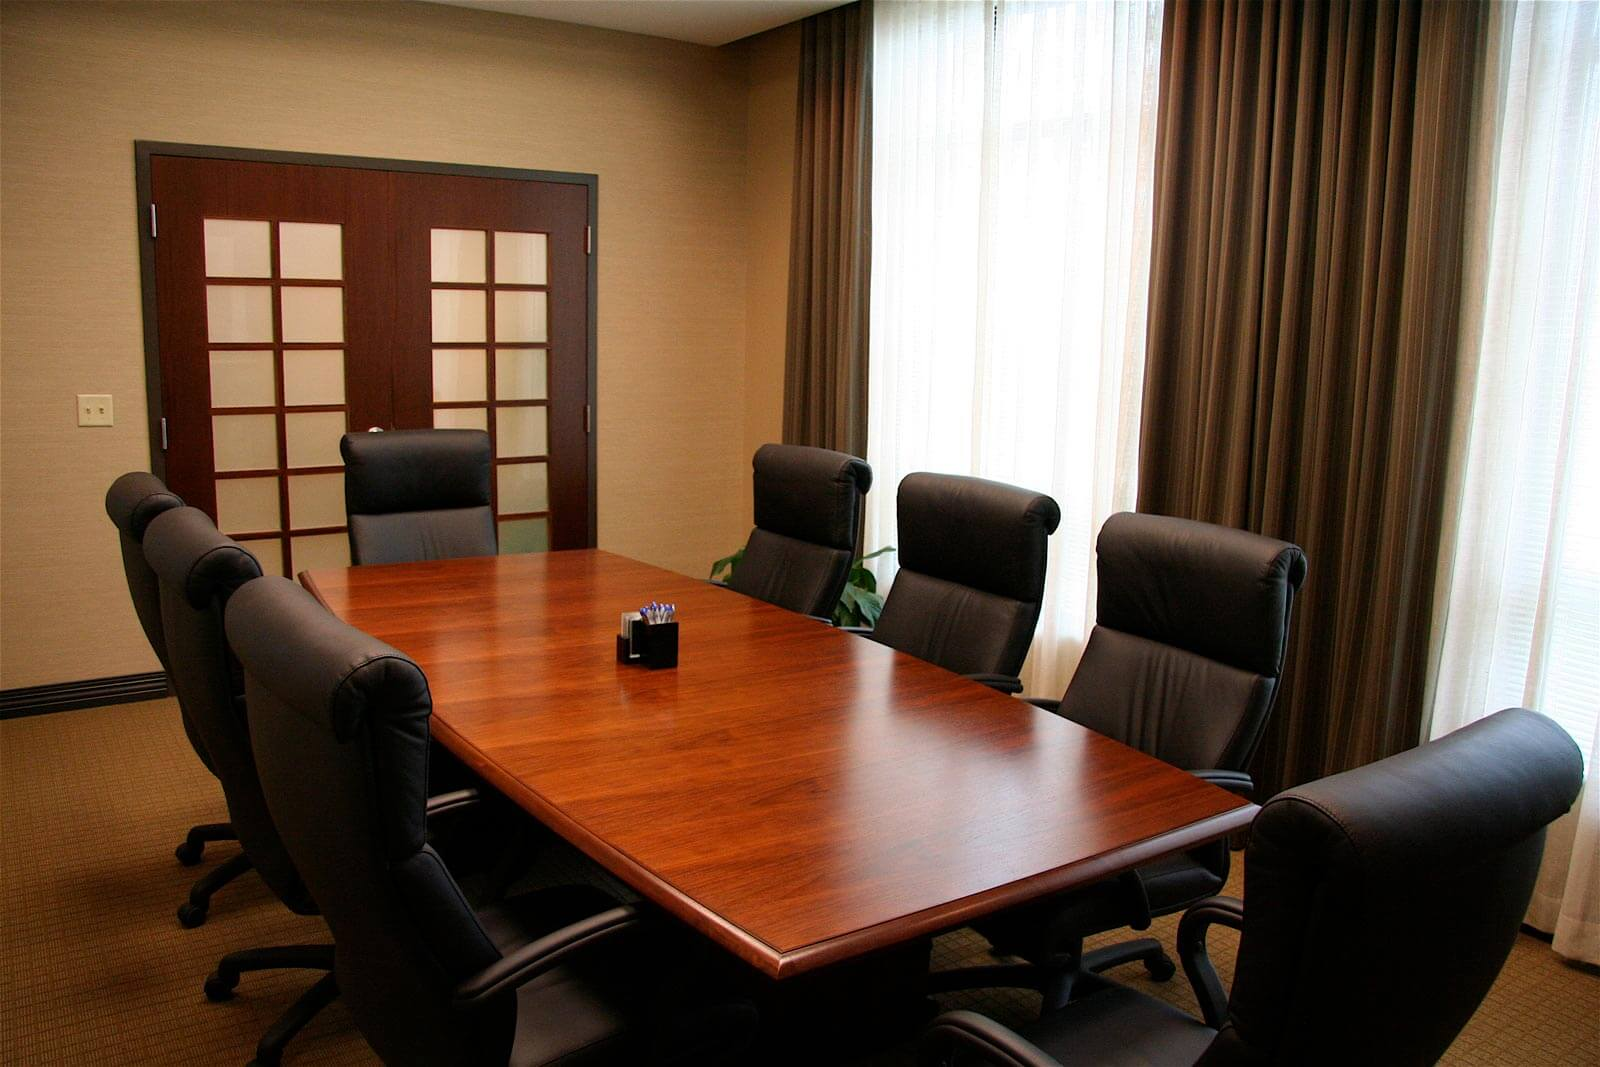 gateway title meeting room table chairs angle